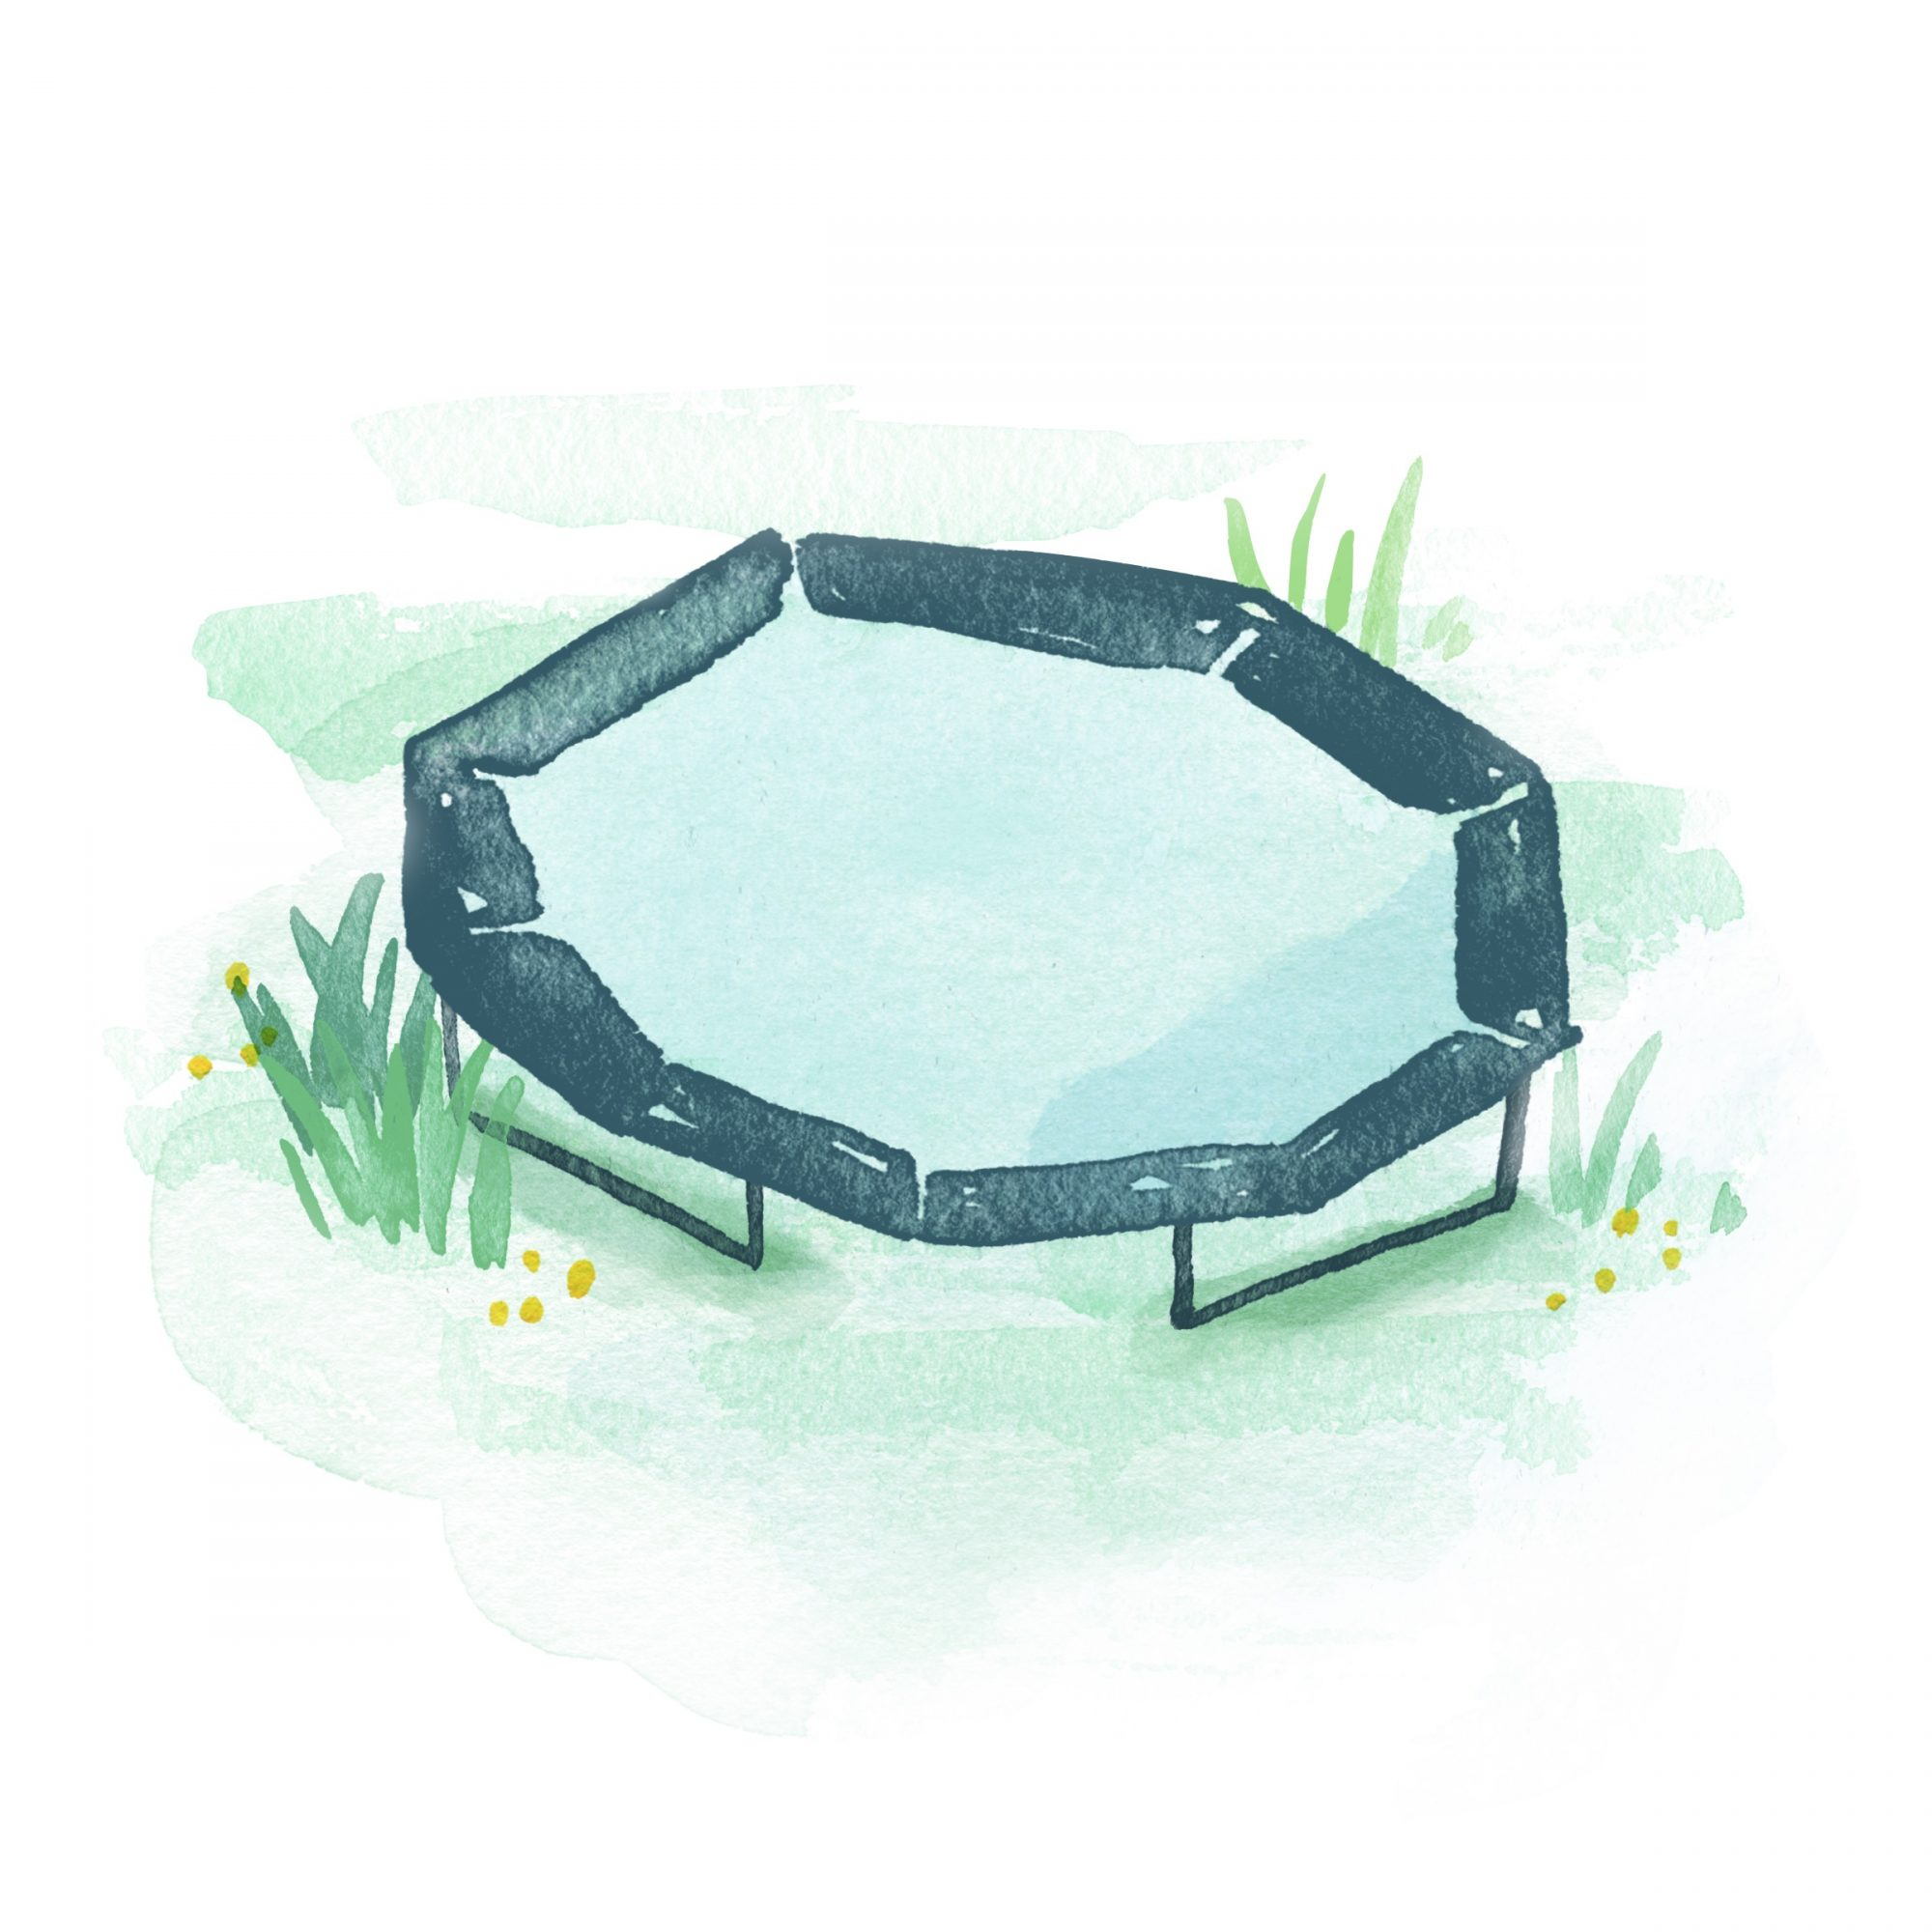 Ode to Trampoline Illustration